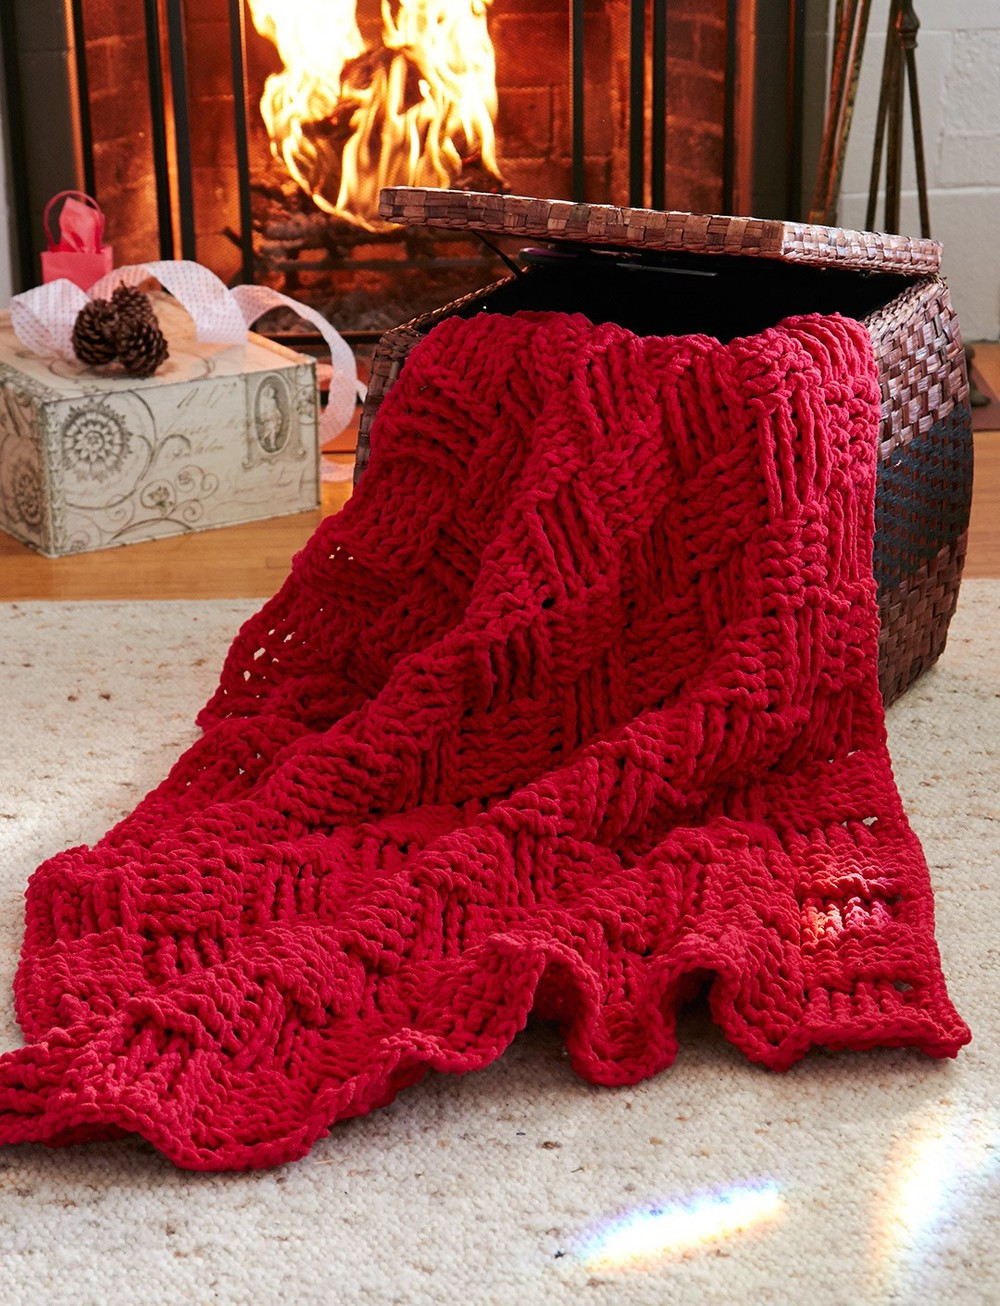 Crochet Throw Patterns Unique Cranberry Basketweave Throw Of Brilliant 40 Photos Crochet Throw Patterns